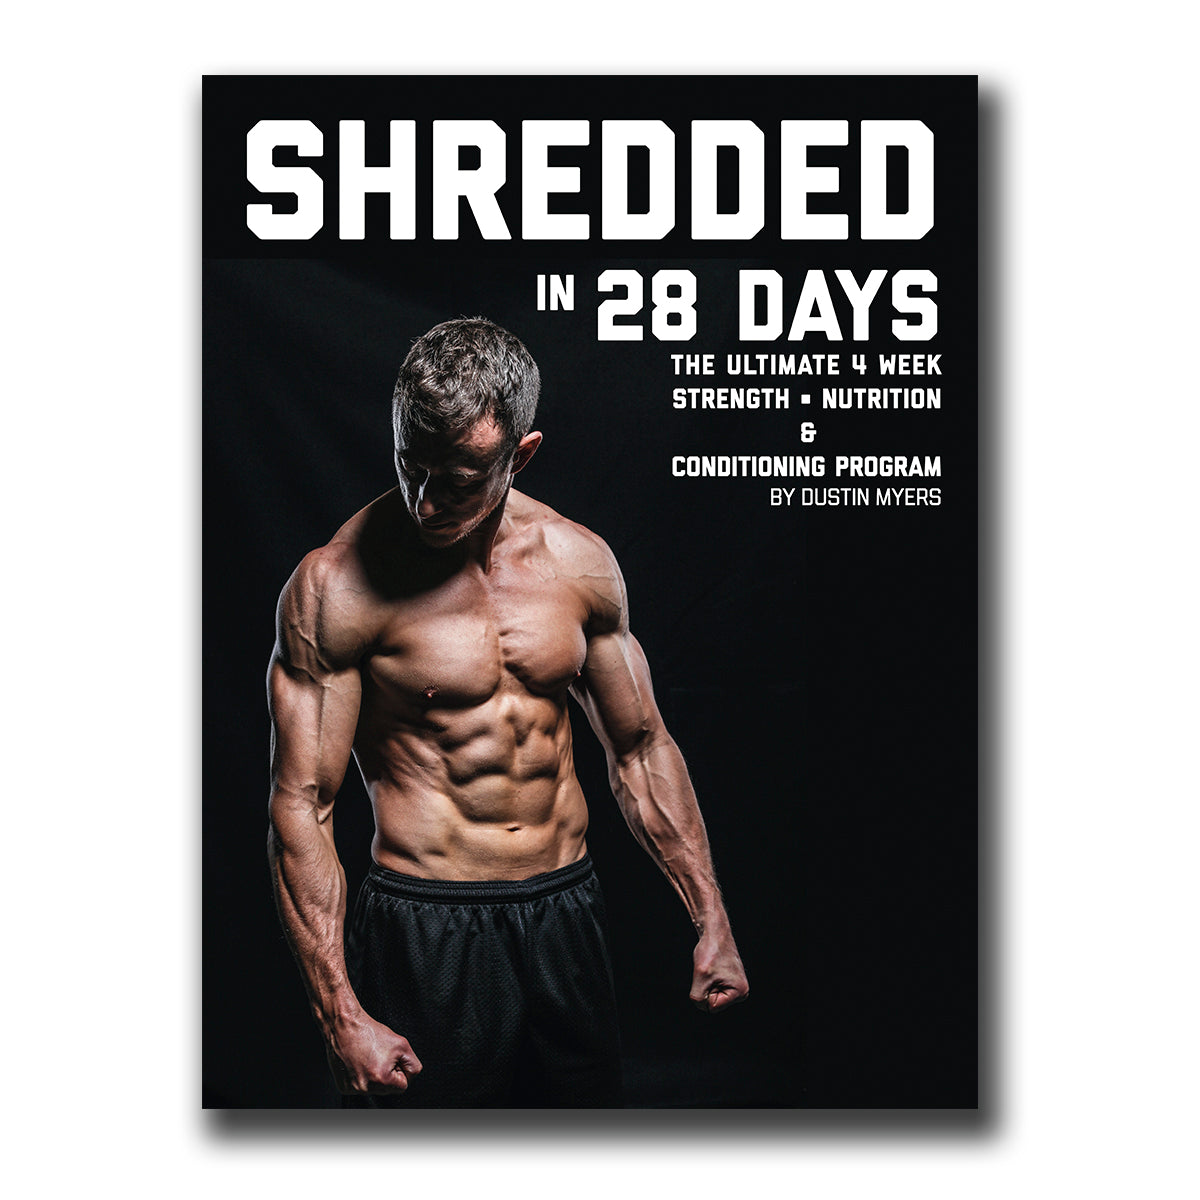 shredded in 28 days the ultimate 4 week strength nutrition and